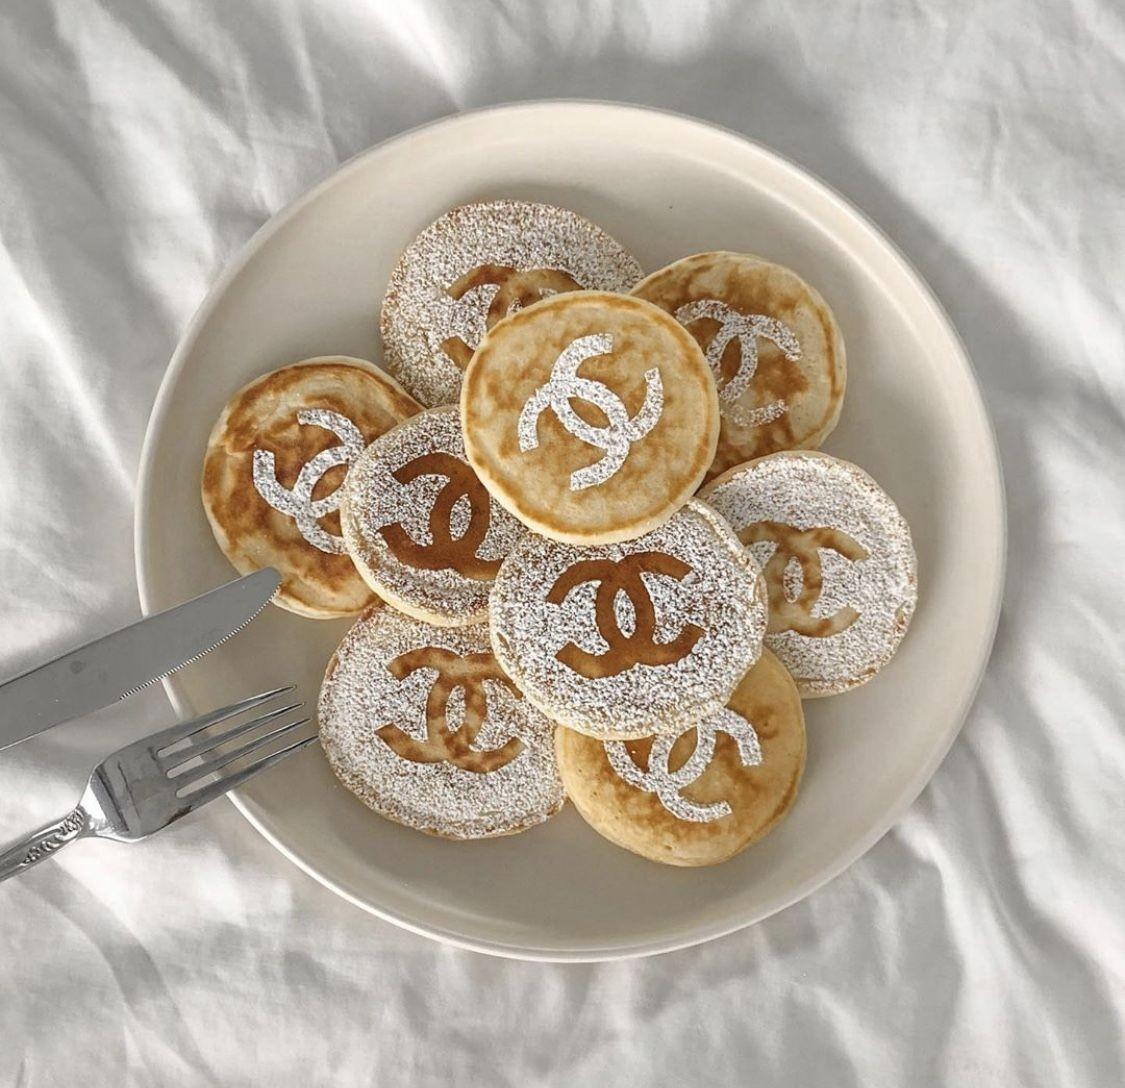 pancakes, chanel, and food image